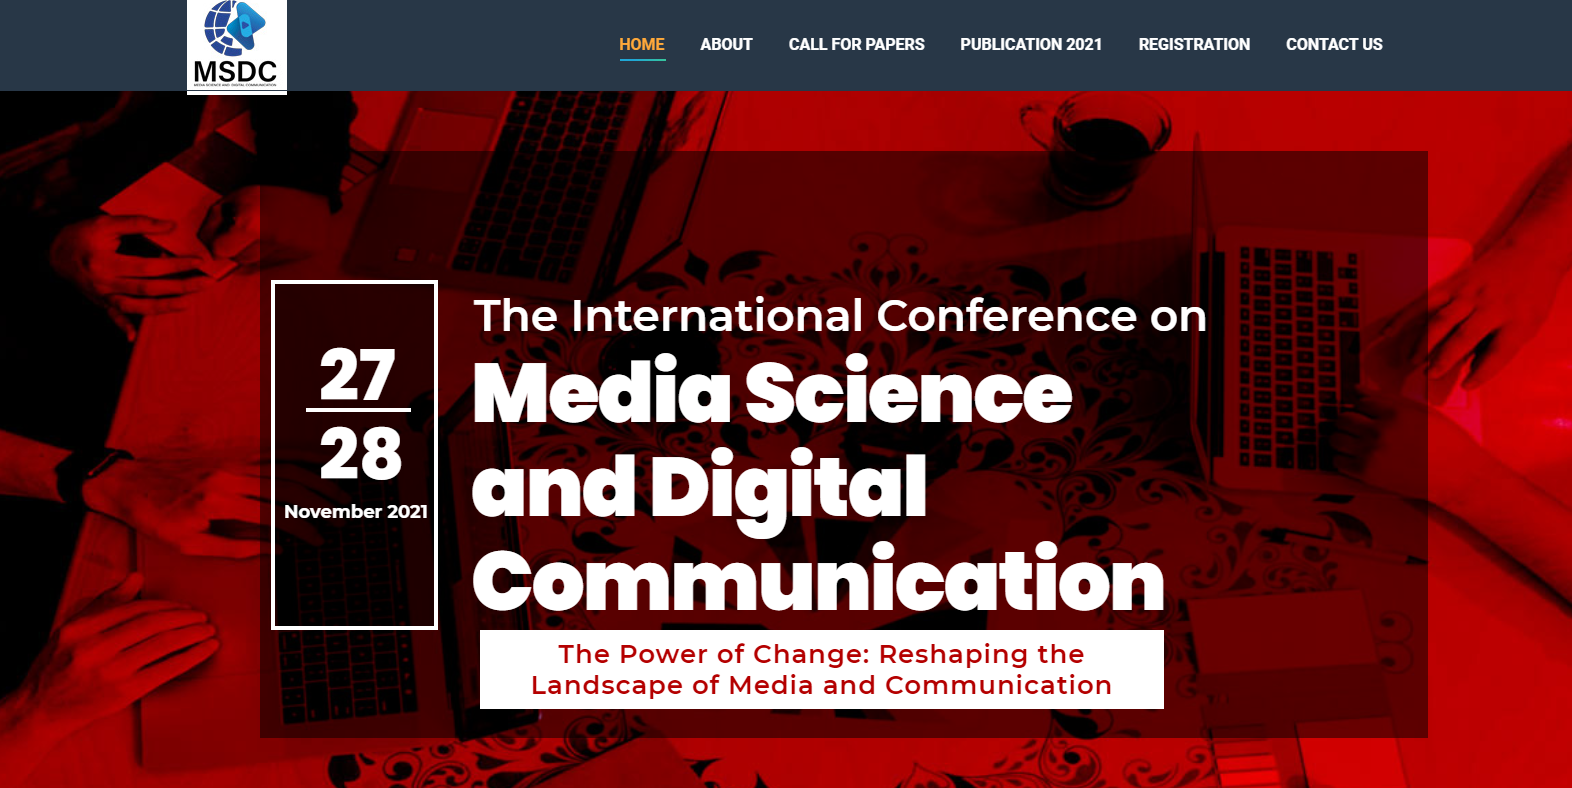 The International Conference on Media Science and Digital Communication (special rates for ITB participants)